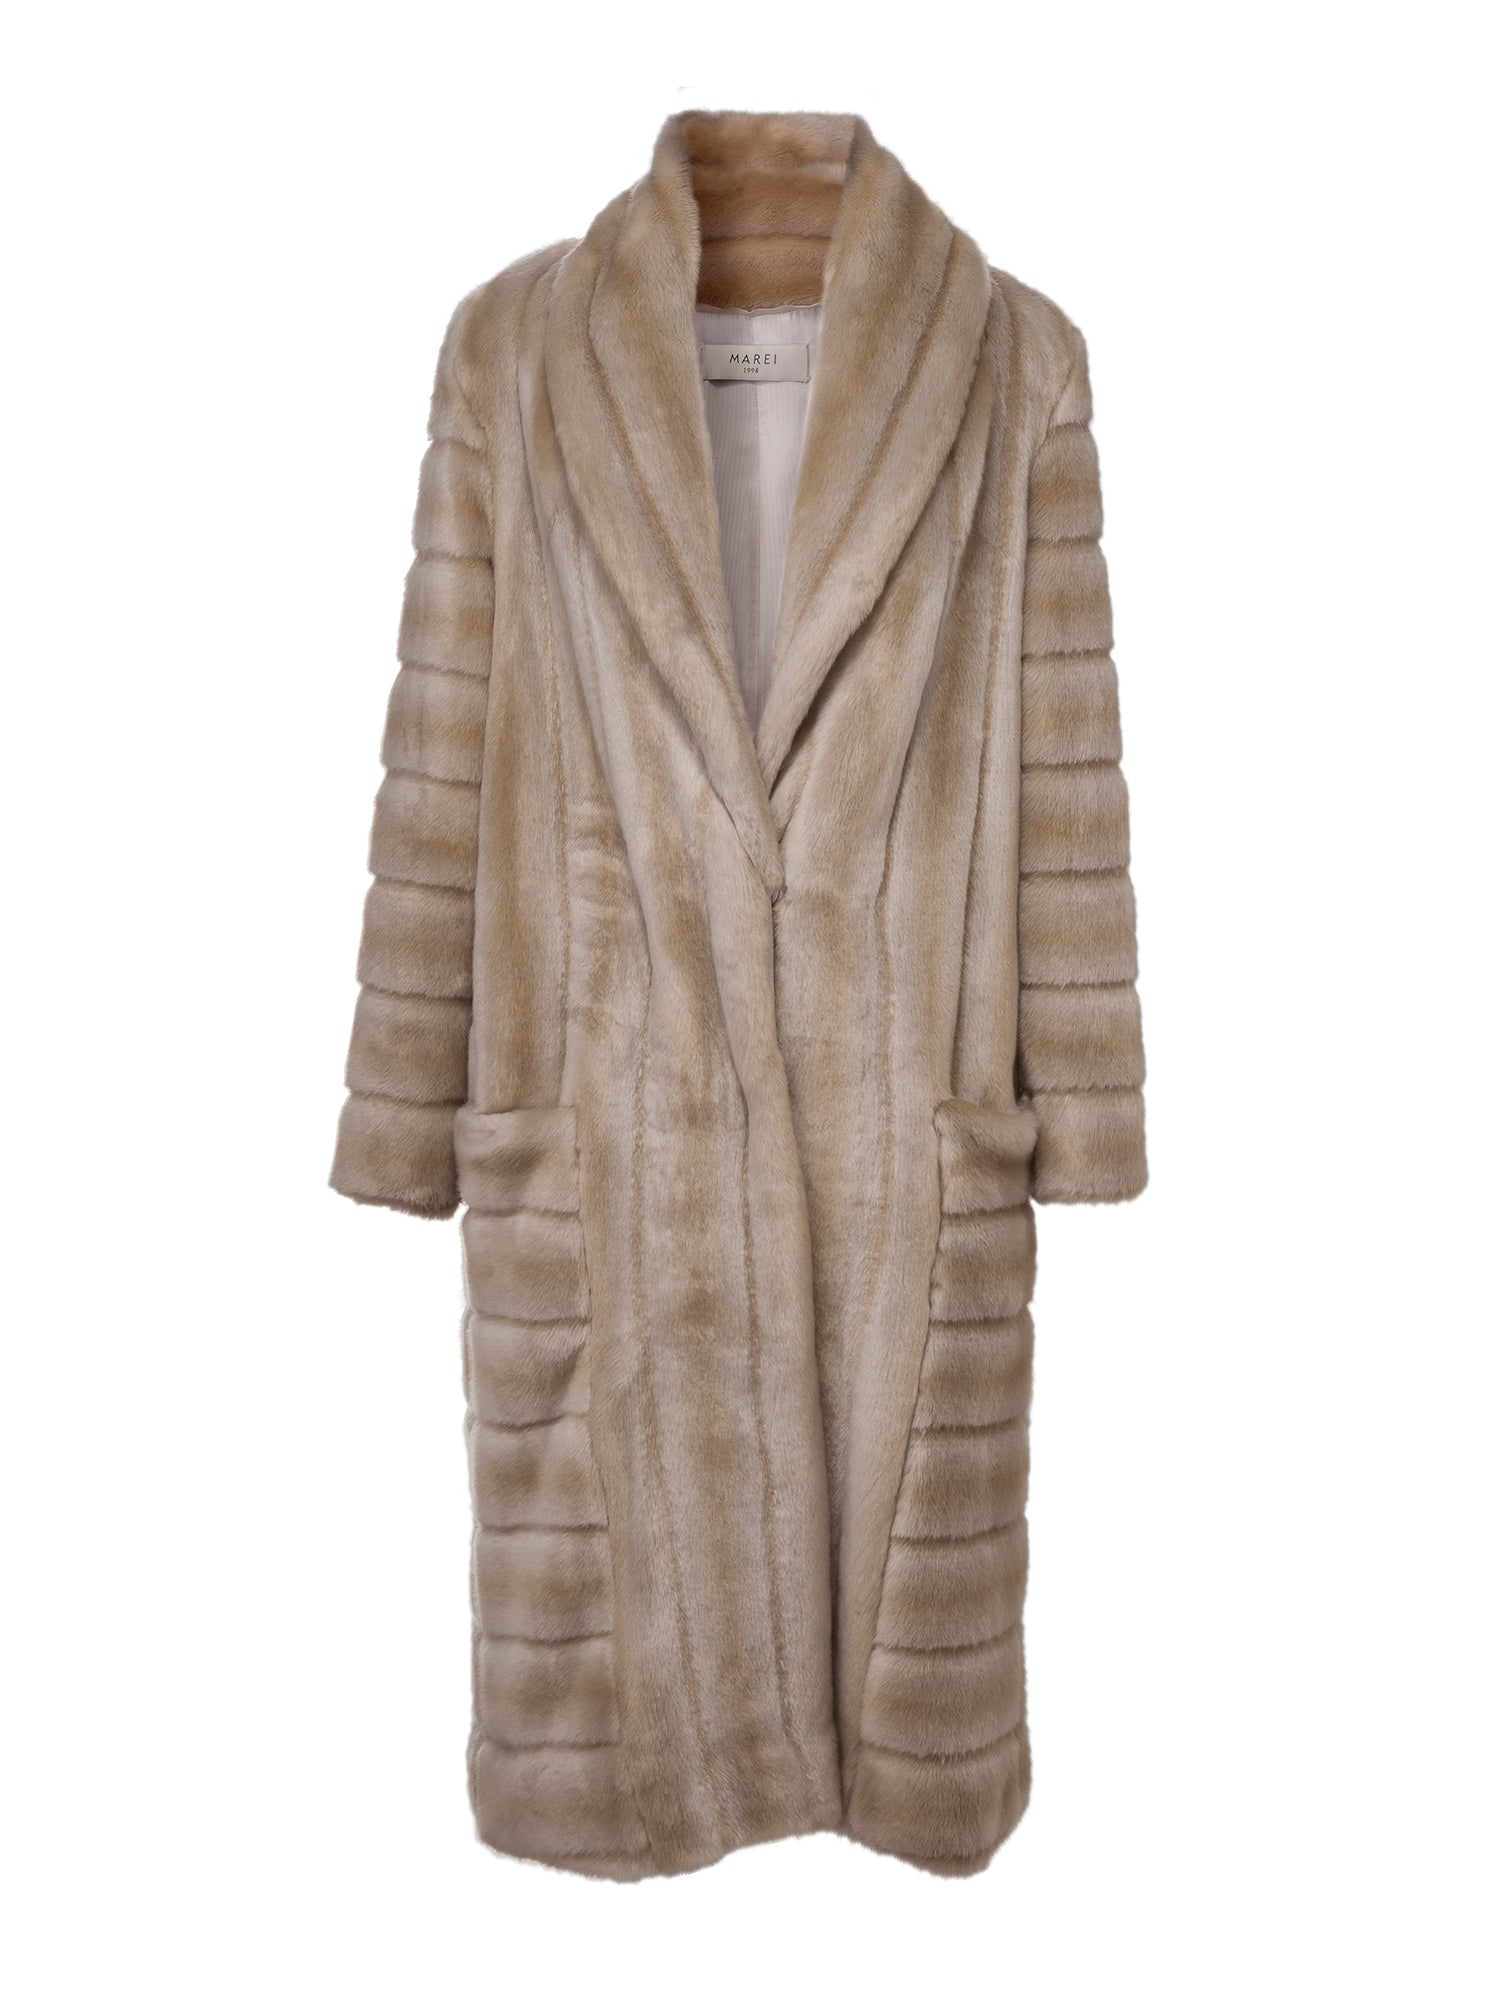 A Packshot Of Marei1998's Timeless Echinacea Long Faux Fur Coat In The Classiest Natural/Beige Color. Featuring Calf Length, Oversized Silhouette And Wide Shawl Neckline. Investment Piece / Winter Essential. Front View. Resort 2020 Collection - Furless Friendship.